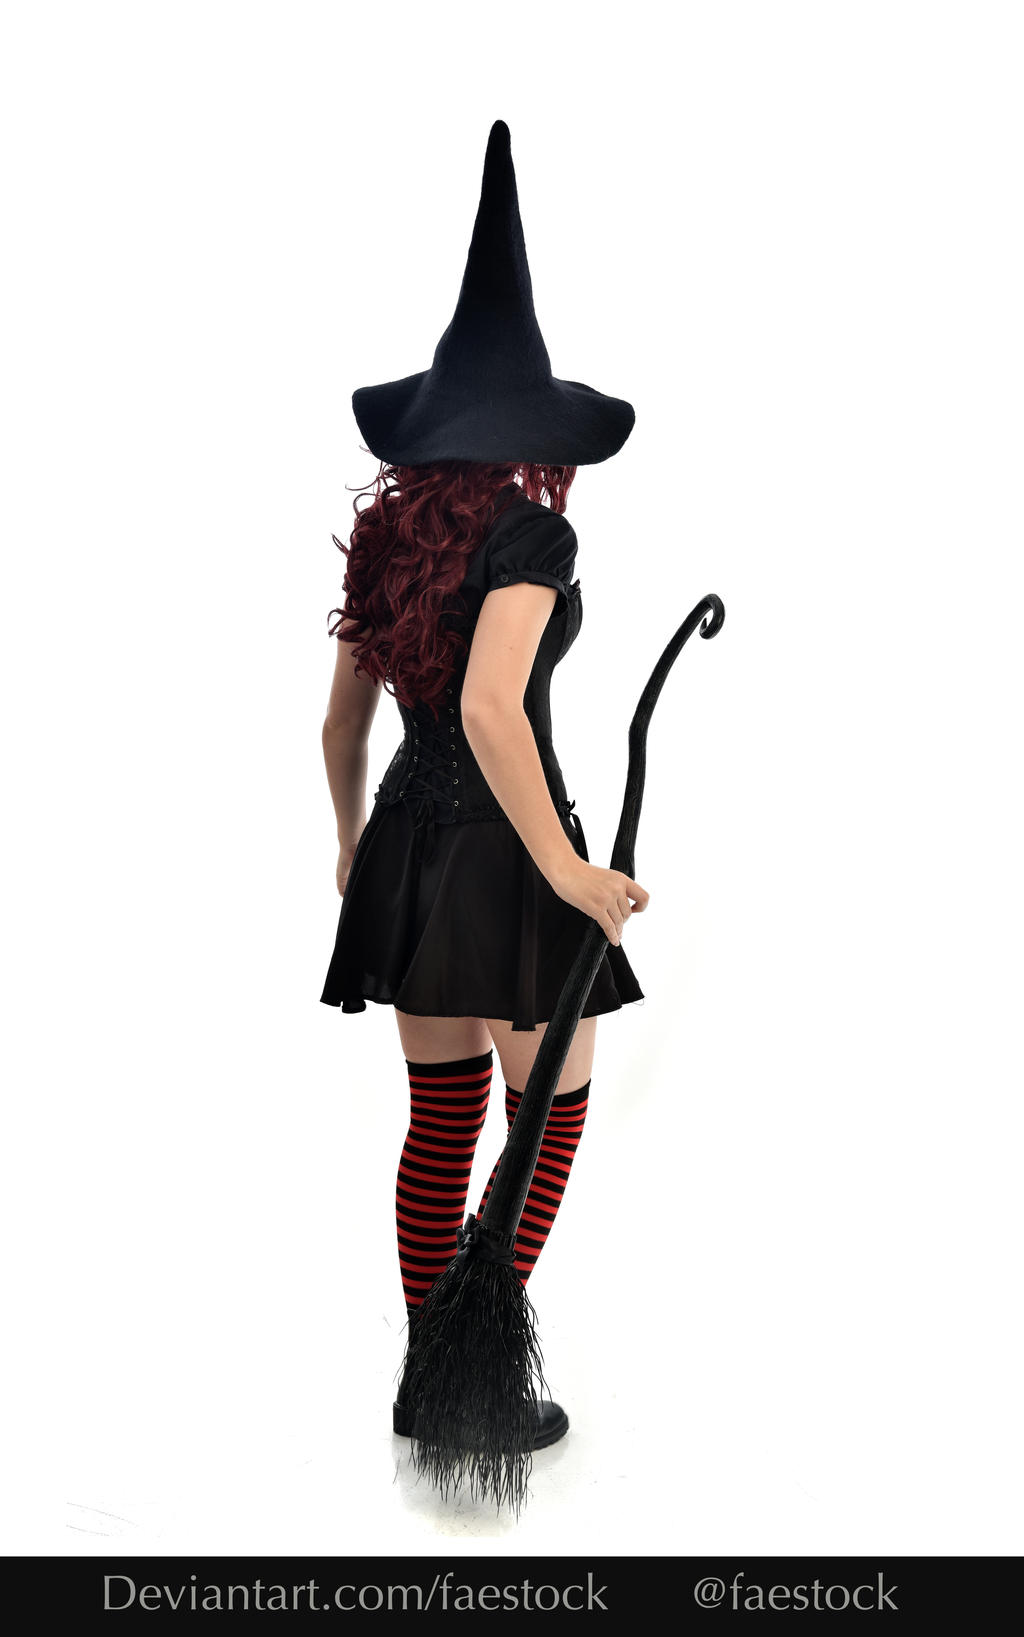 Hocus Pocus -  Witch stock model reference 5 by faestock